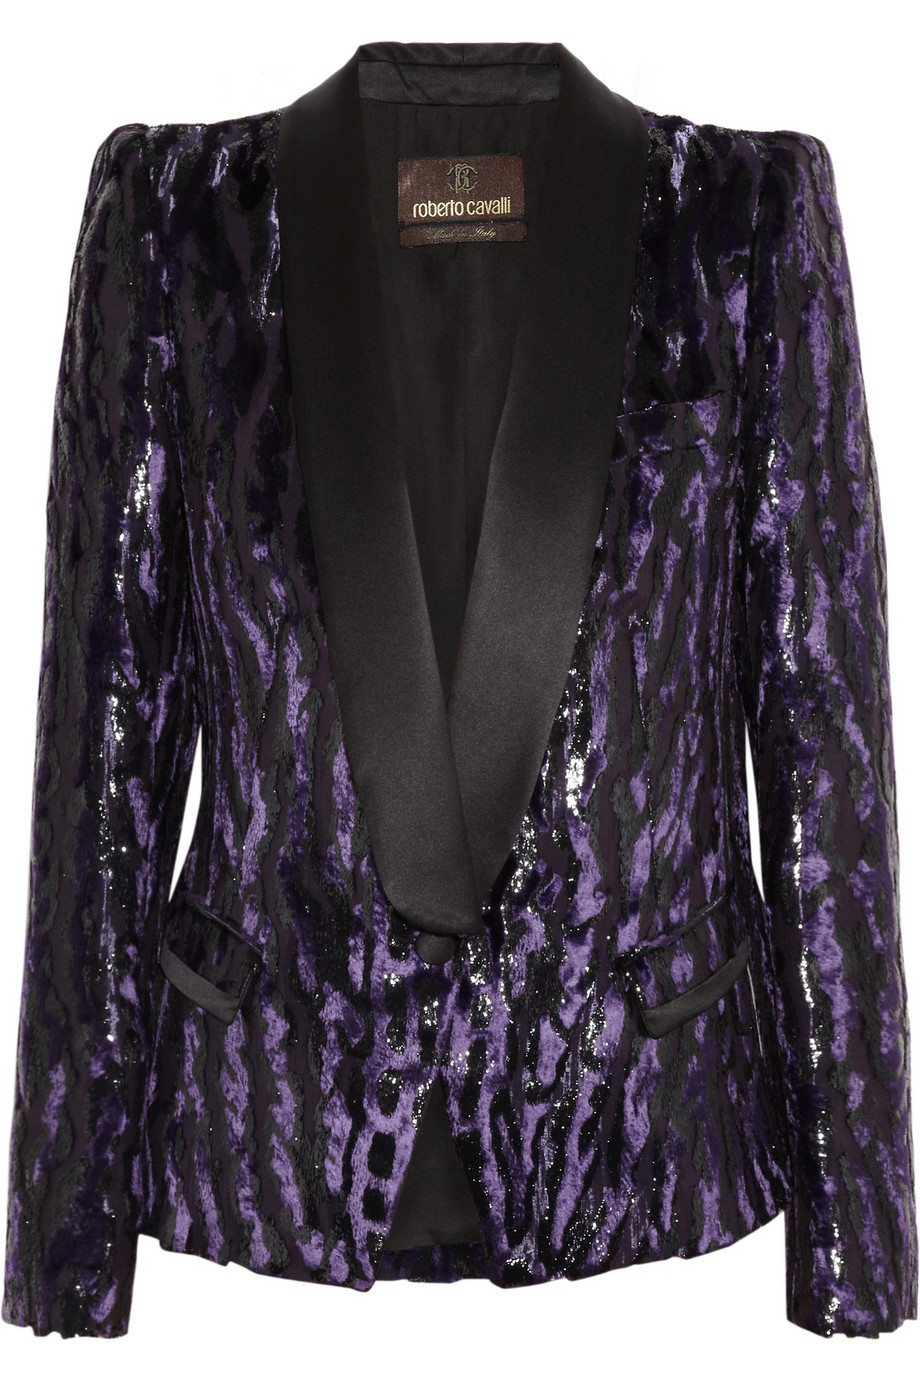 2c8415ae4e10 Roberto Cavalli Animalprint Brocade Tuxedo Jacket in Purple - Lyst